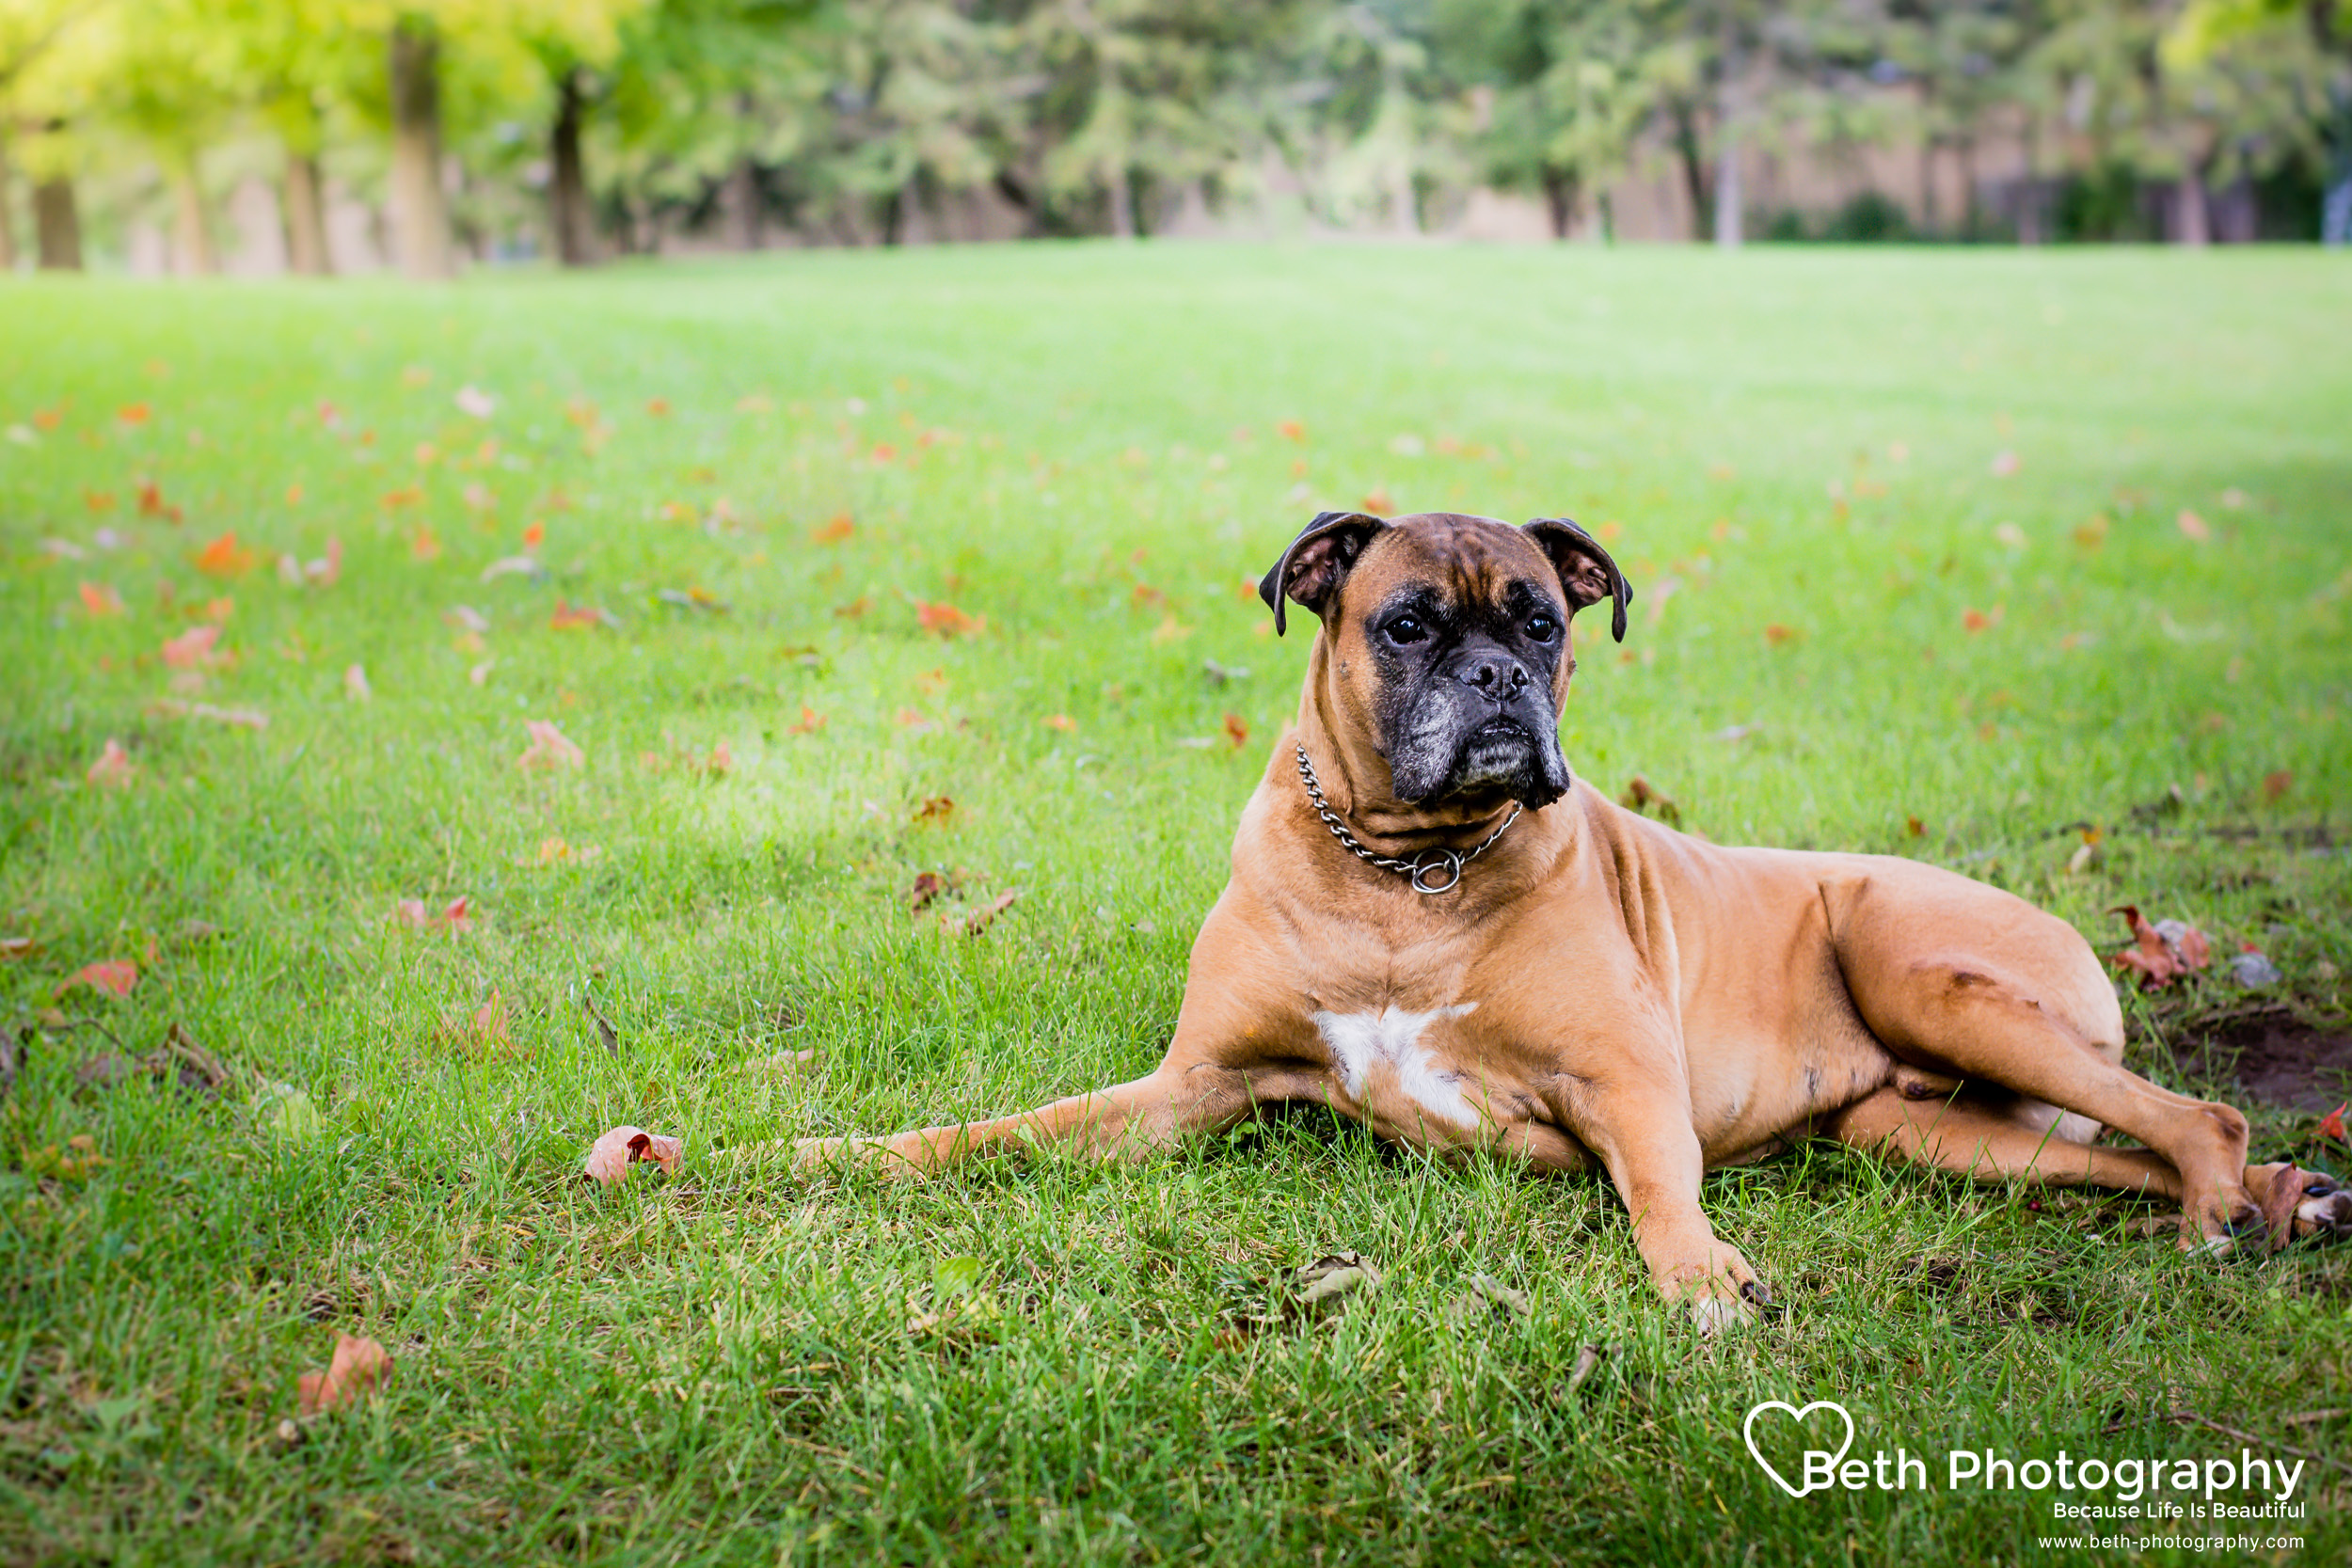 Beth Photography - Pet Photographer - Servicing the Ottawa, Cornwall area.